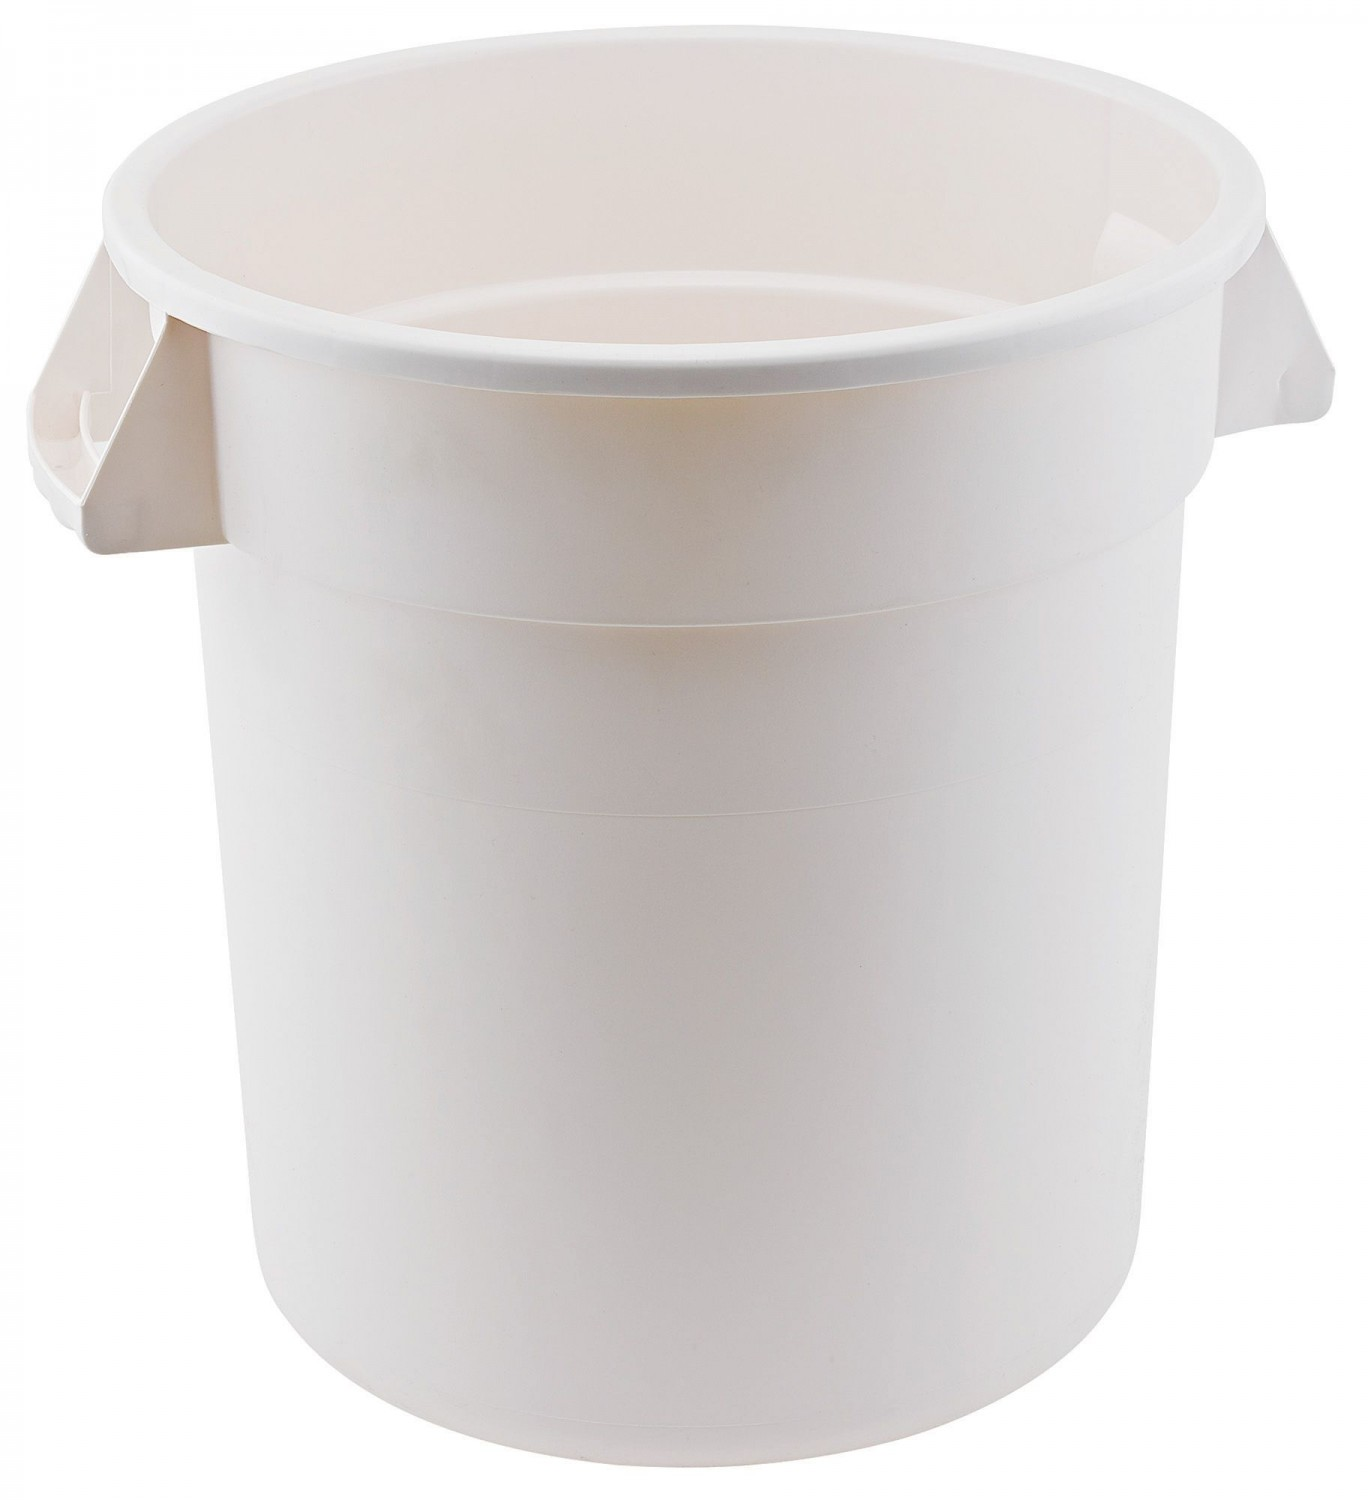 Winco FCW-10 Heavy Duty White Polypropylene Container 10 Gallon